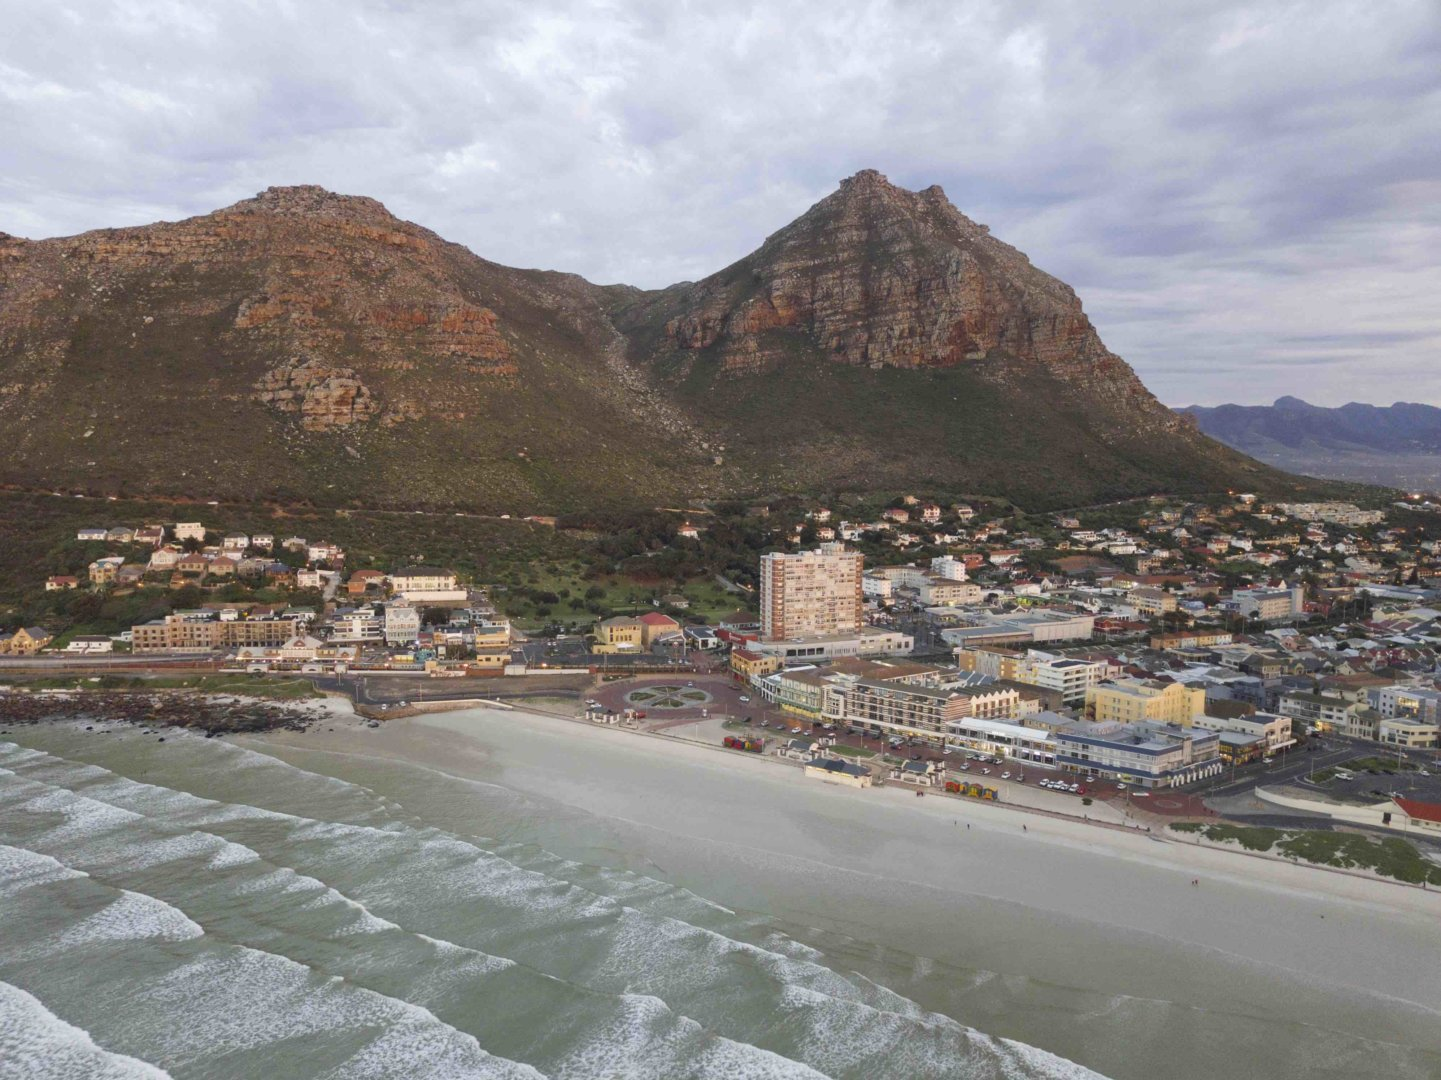 Birds eye view of Muizenberg beach at Sunrise